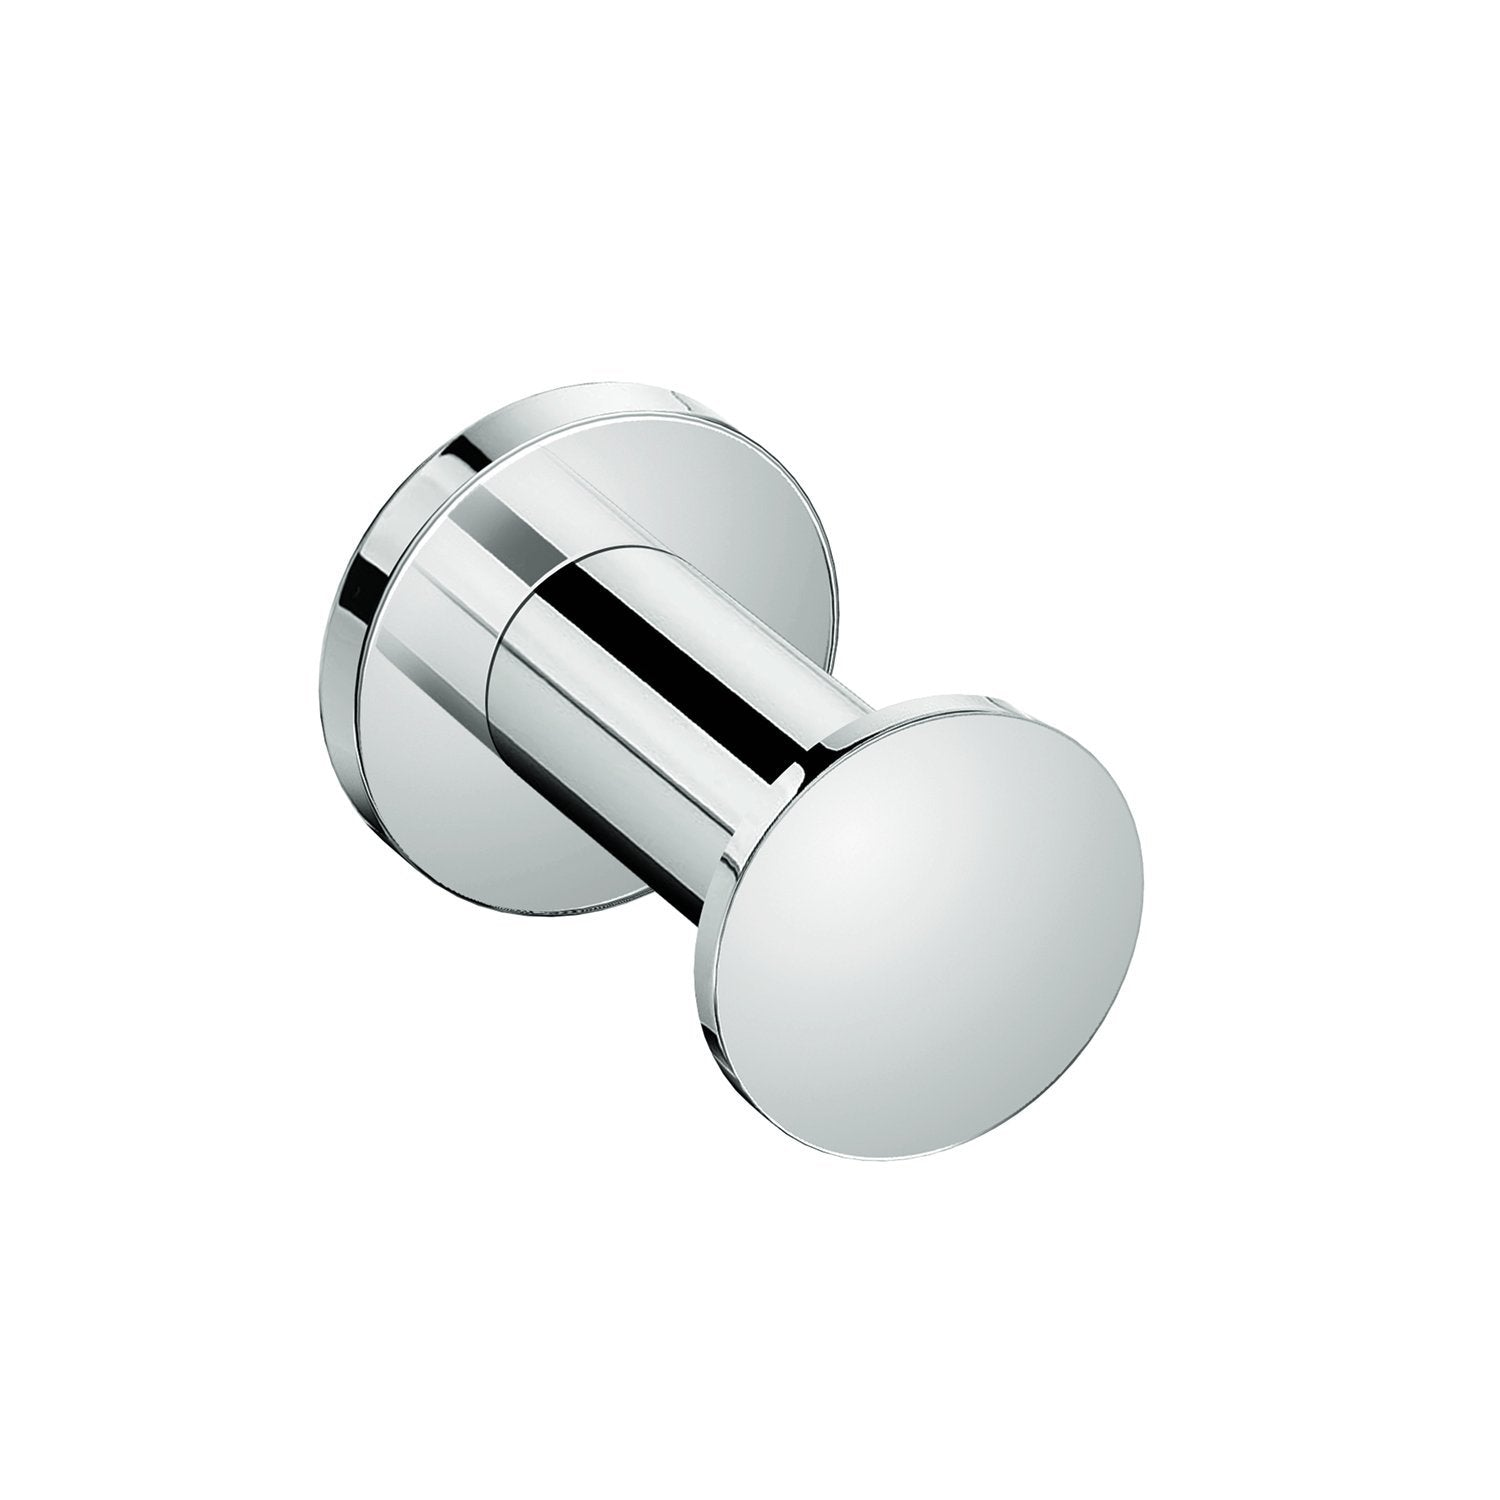 COSMIC Architect Single Bathroom Hook, Wall Mount, Brass Body, Chrome Finish (2050121)